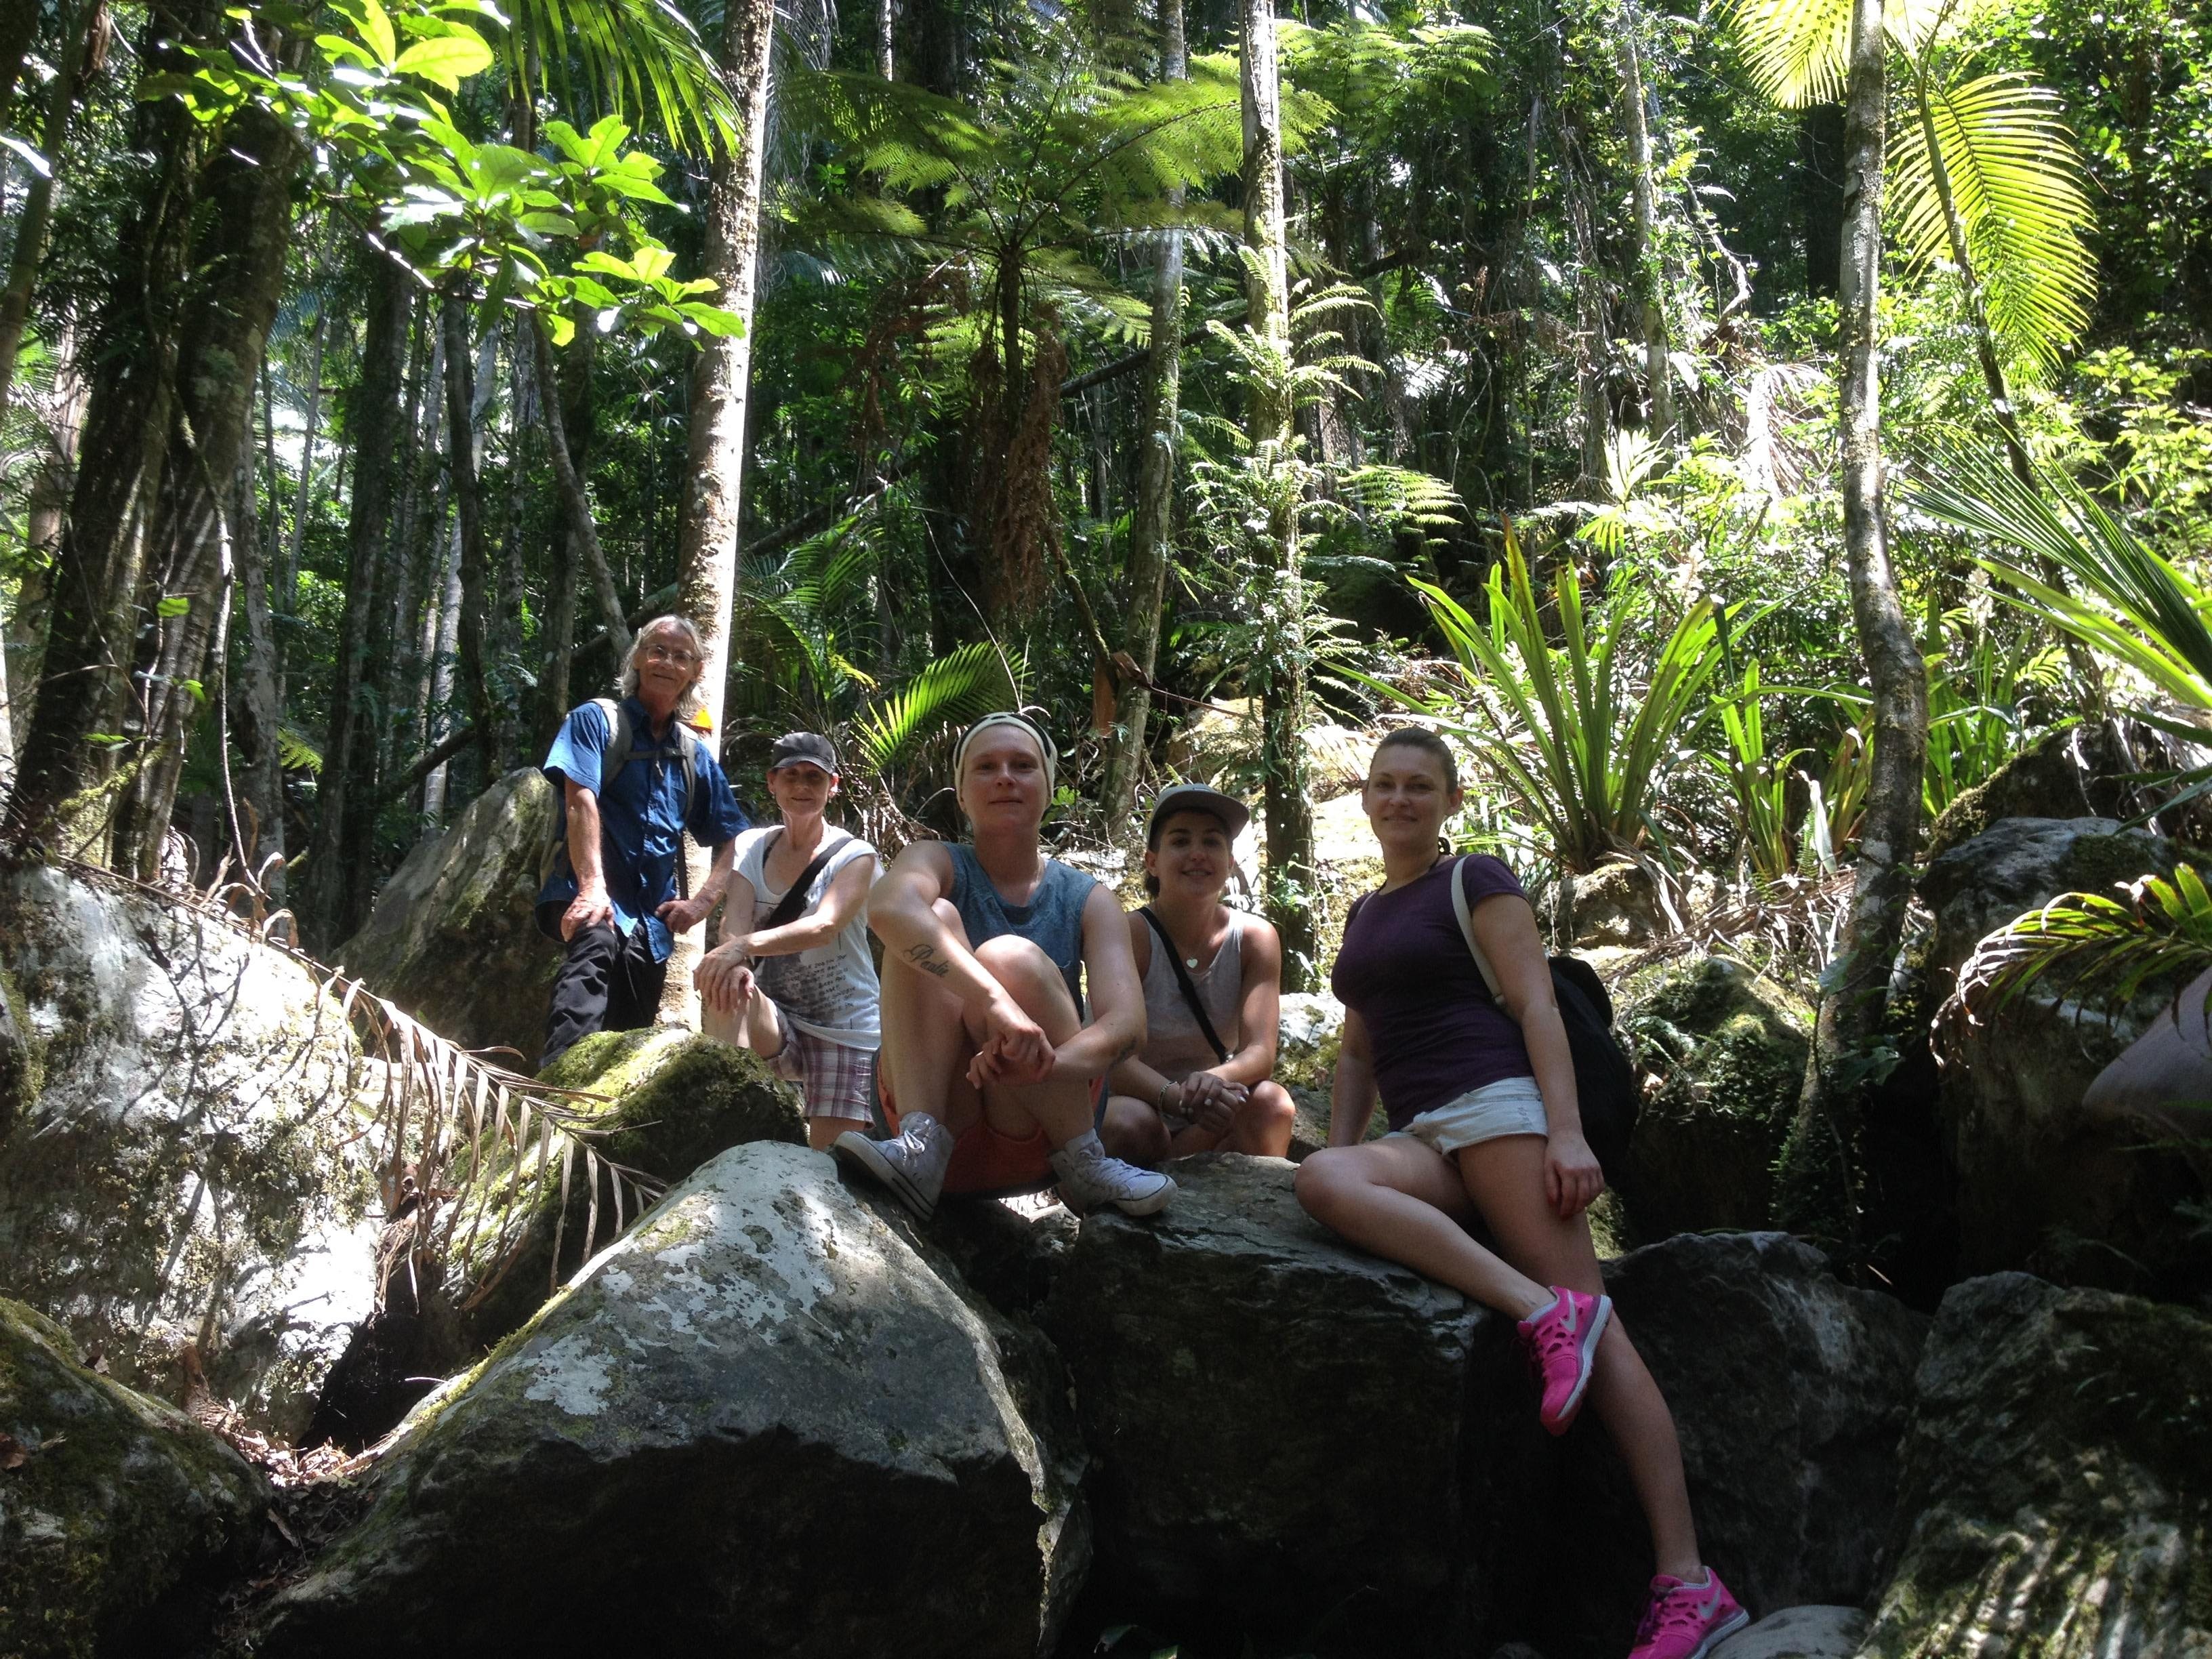 Byron Bay Hinterland Tour with BBQ Lunch - 5.5 Hours